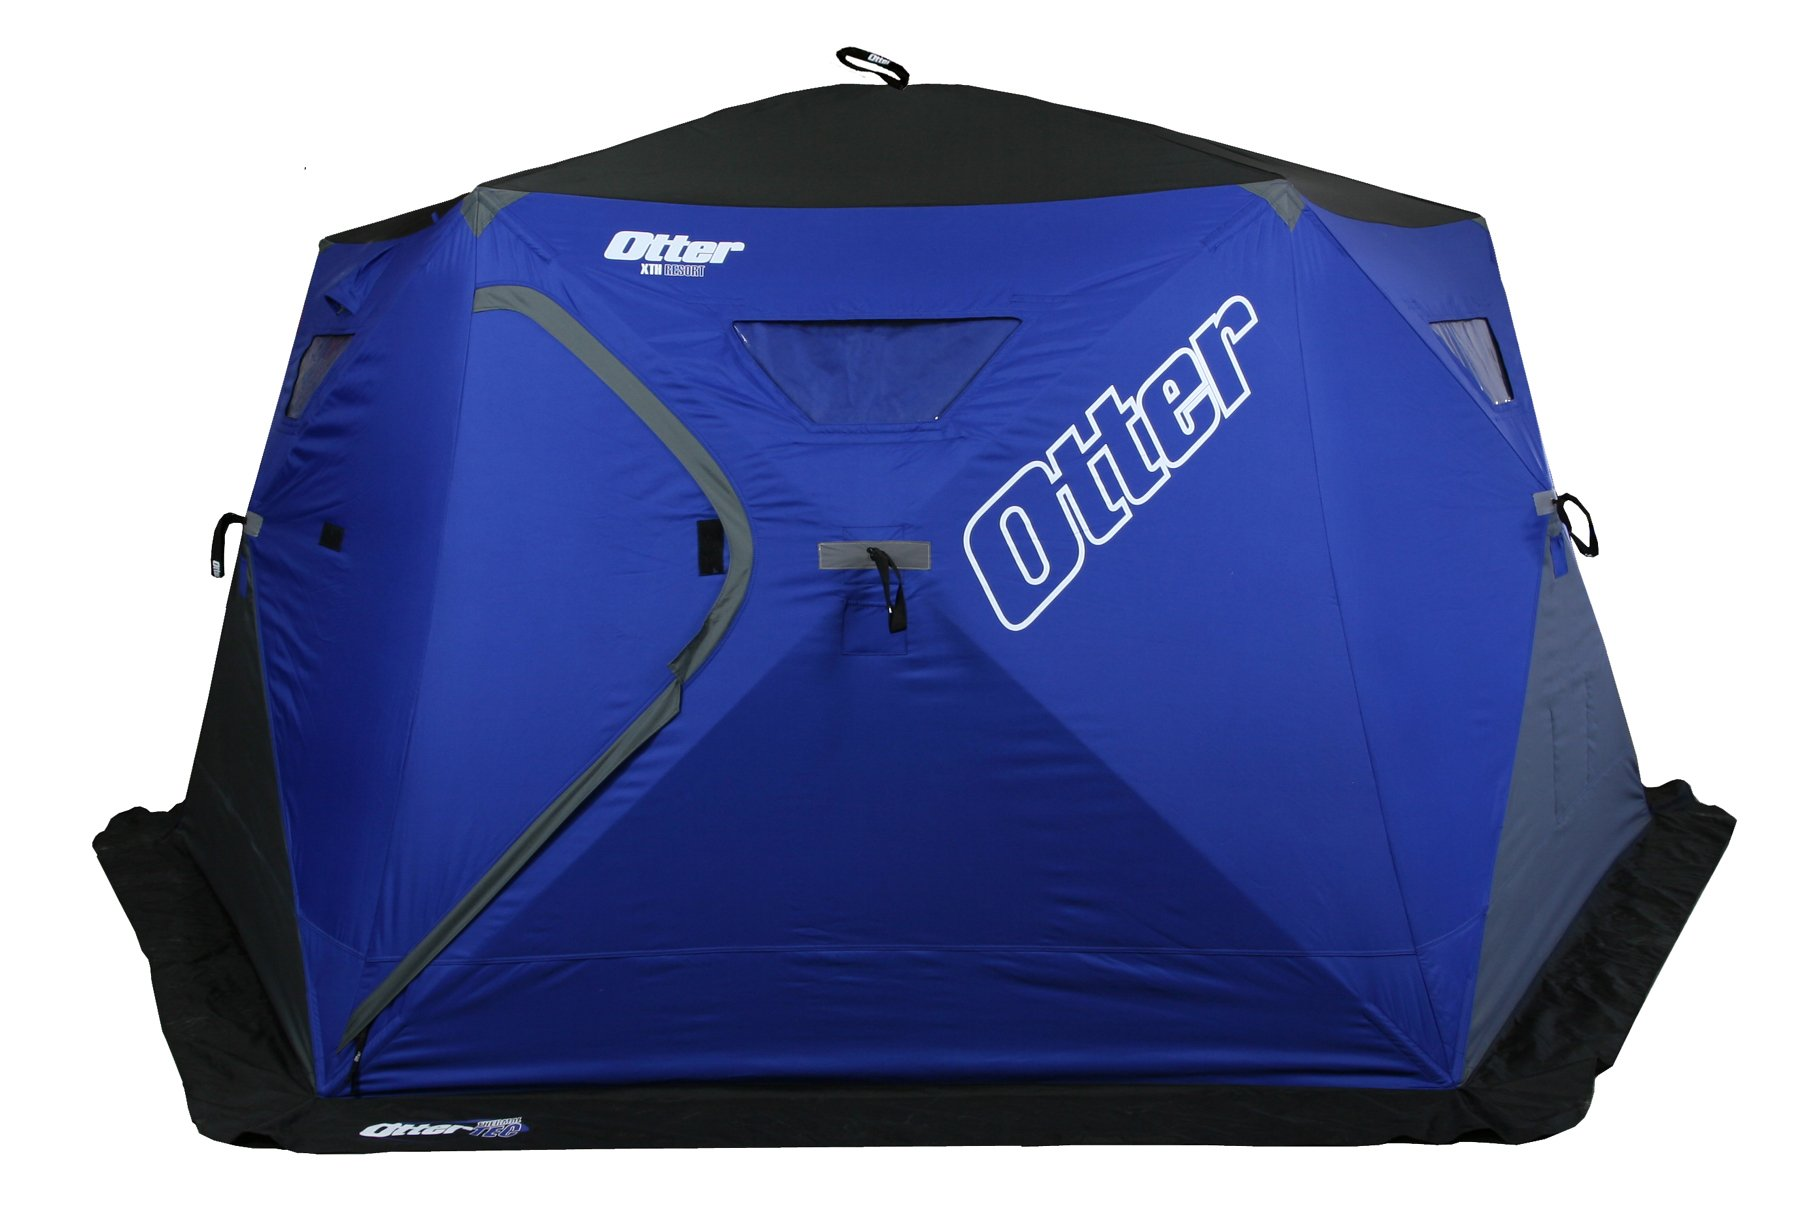 Otter XTH Resort Hub Package (ThermalTec-600) by Otter